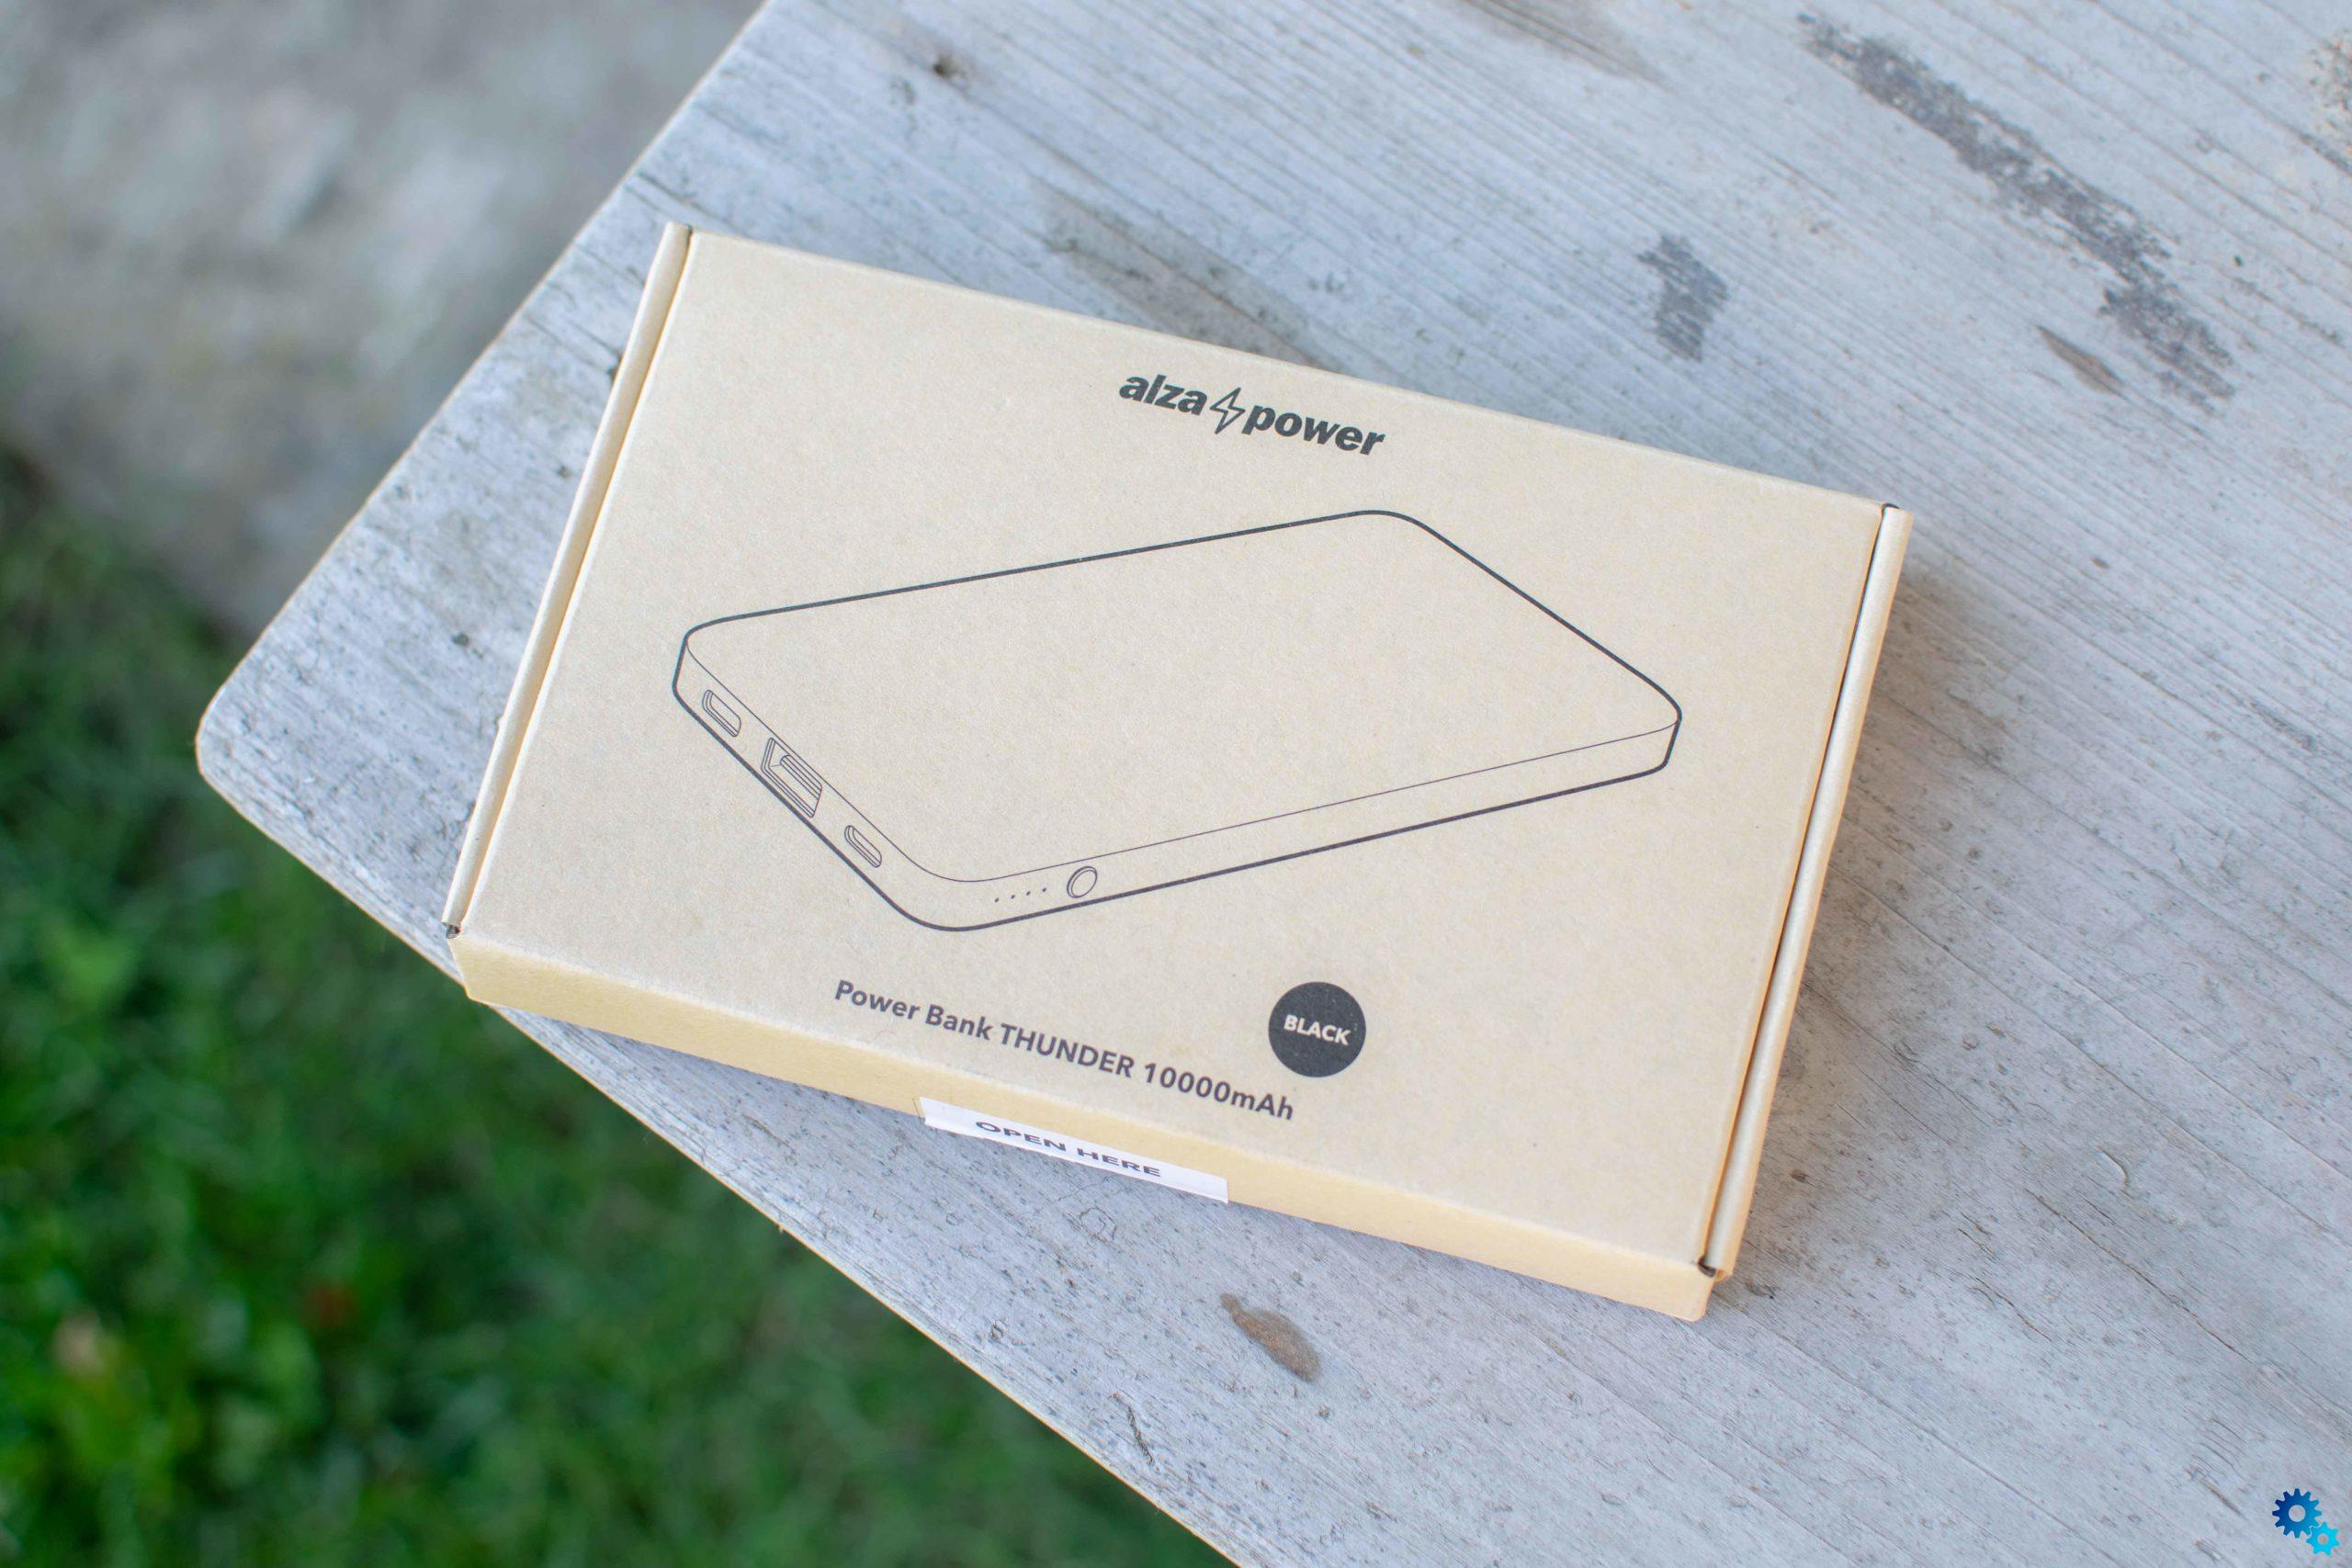 Review of AlzaPower Thunder 10000 mAh Fast Charge: Almost perfect power bank